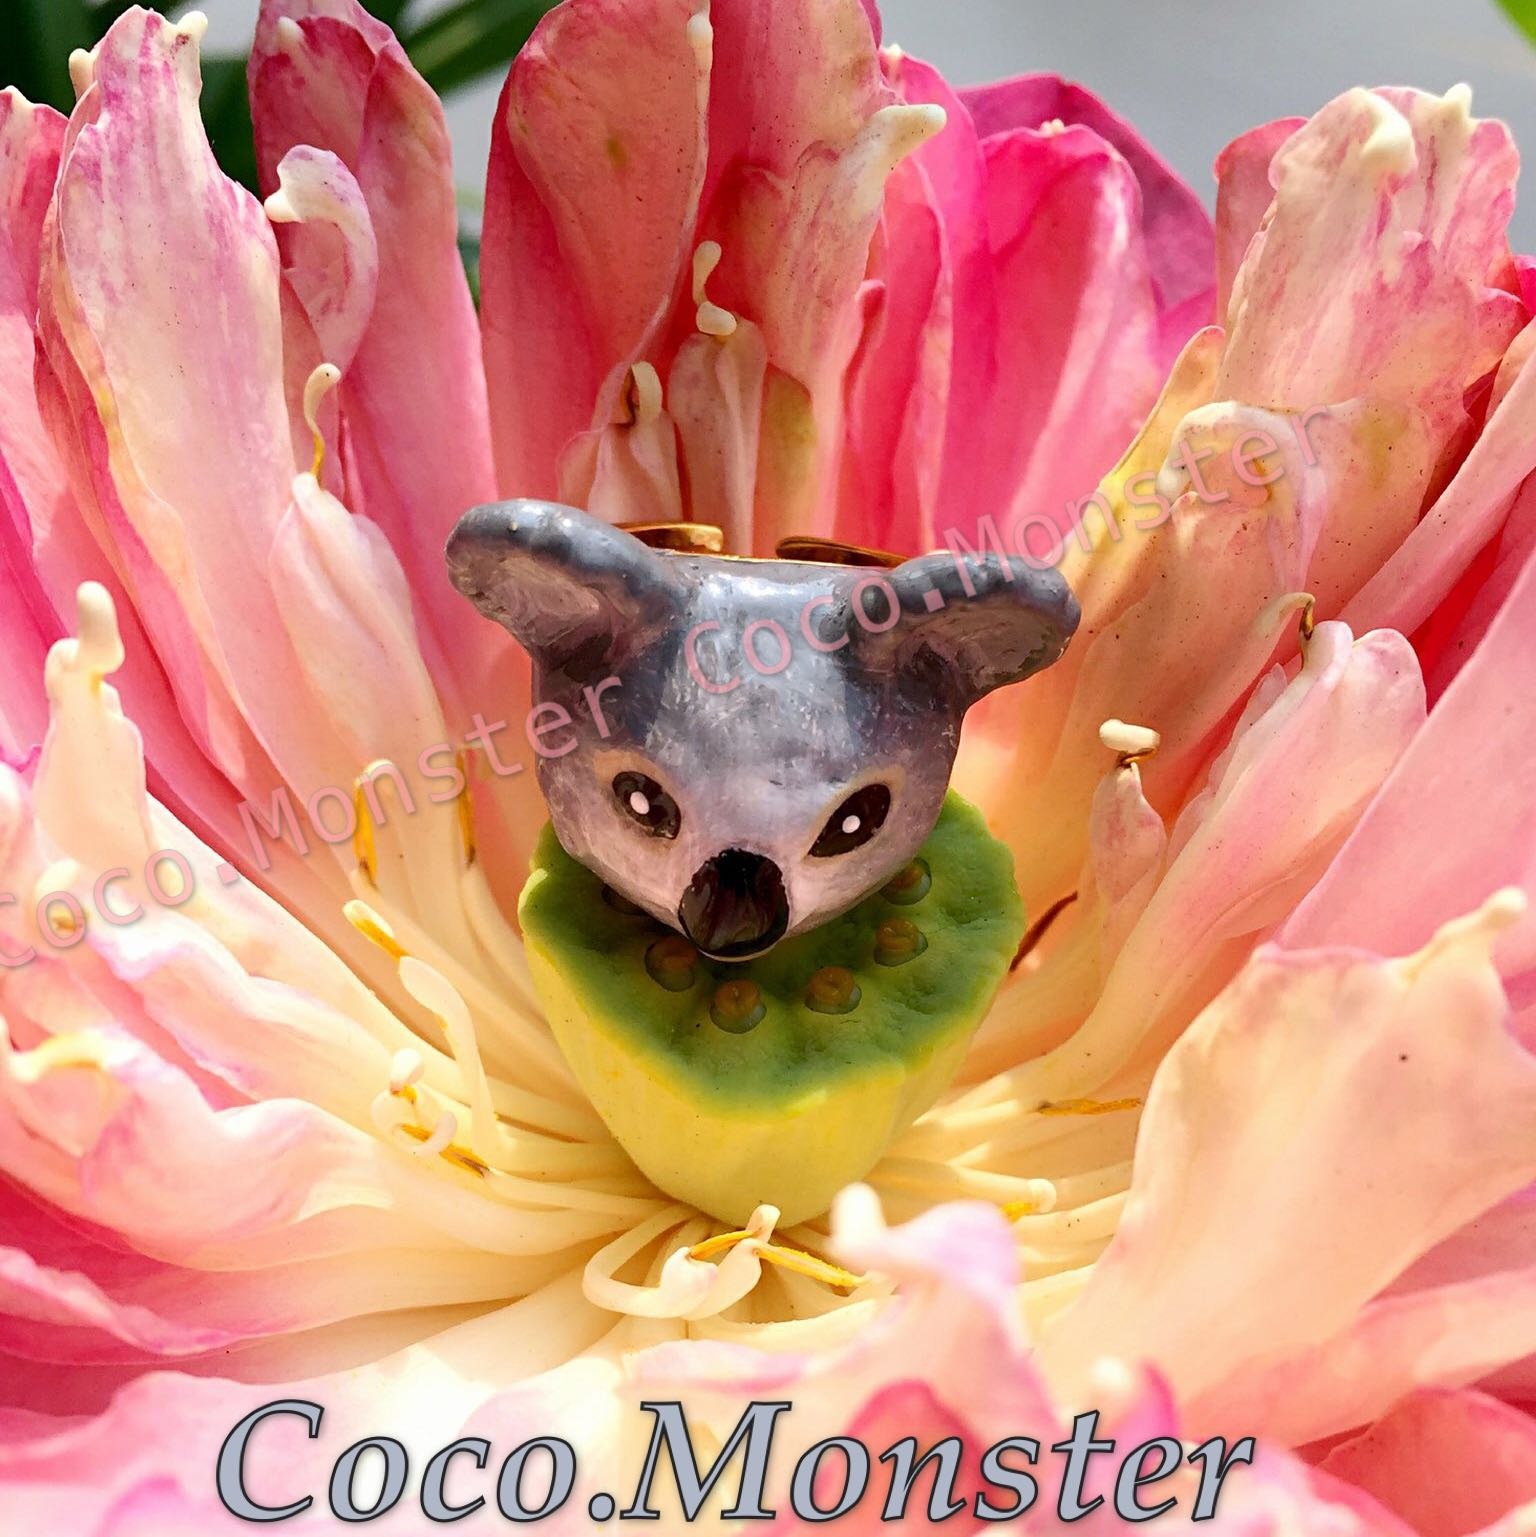 coco.monster